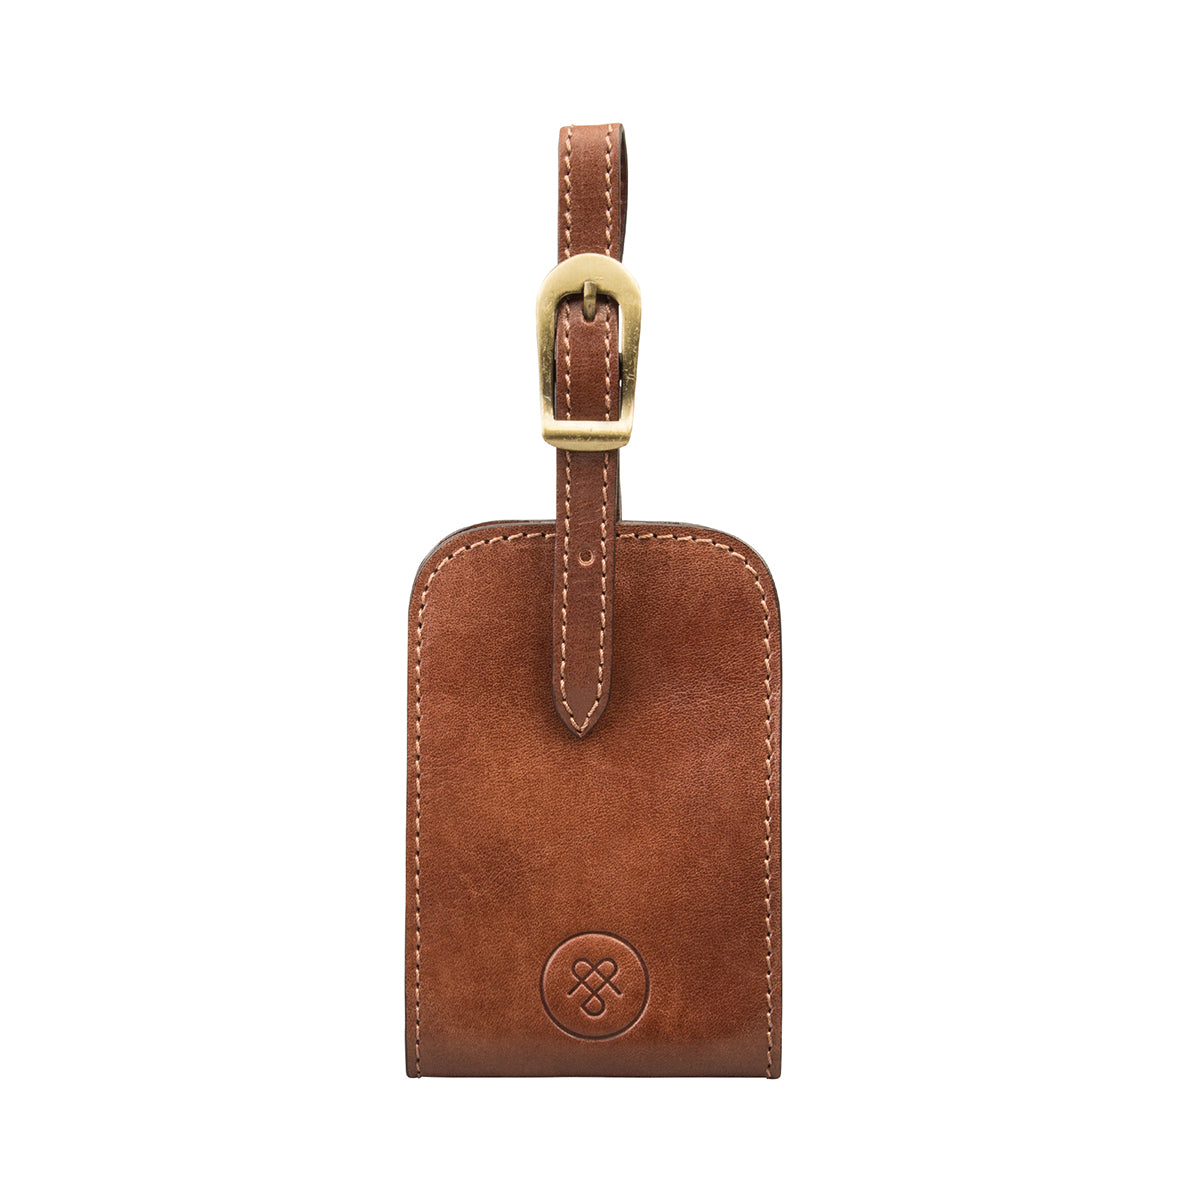 Image 1 of the 'Ledro' Leather Luggage Tag